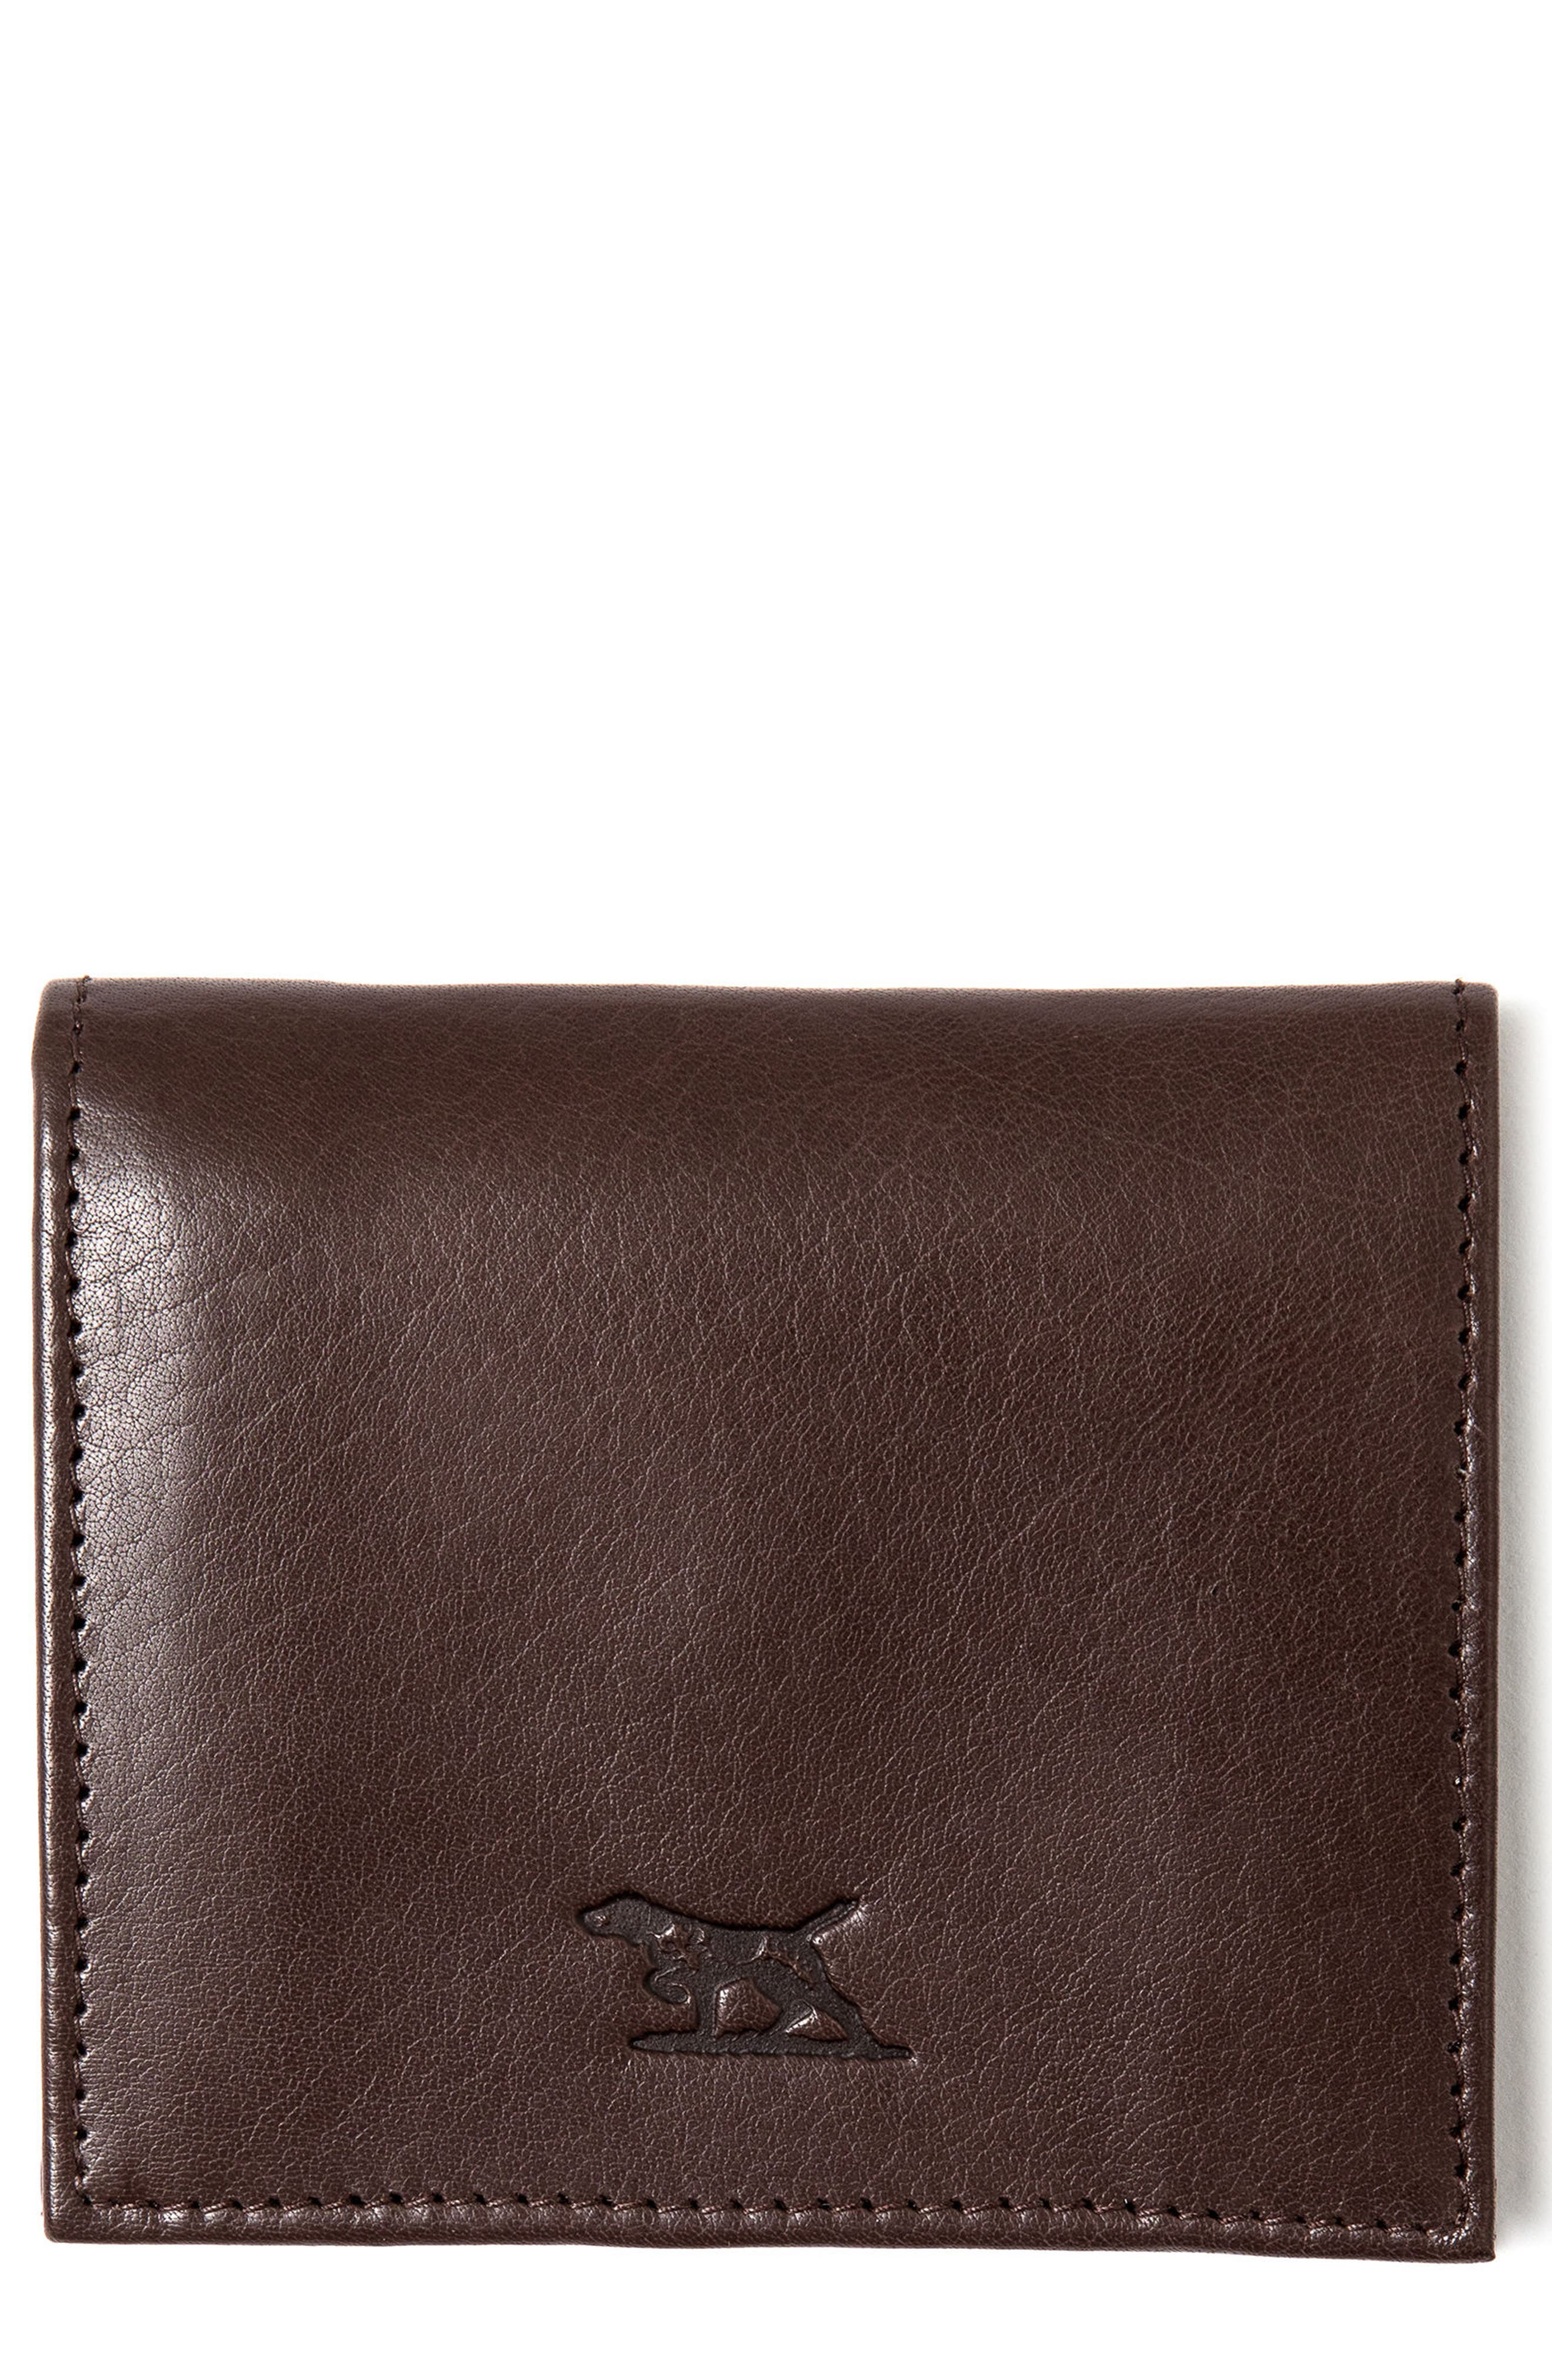 Highbank Station Leather Wallet,                             Main thumbnail 1, color,                             247